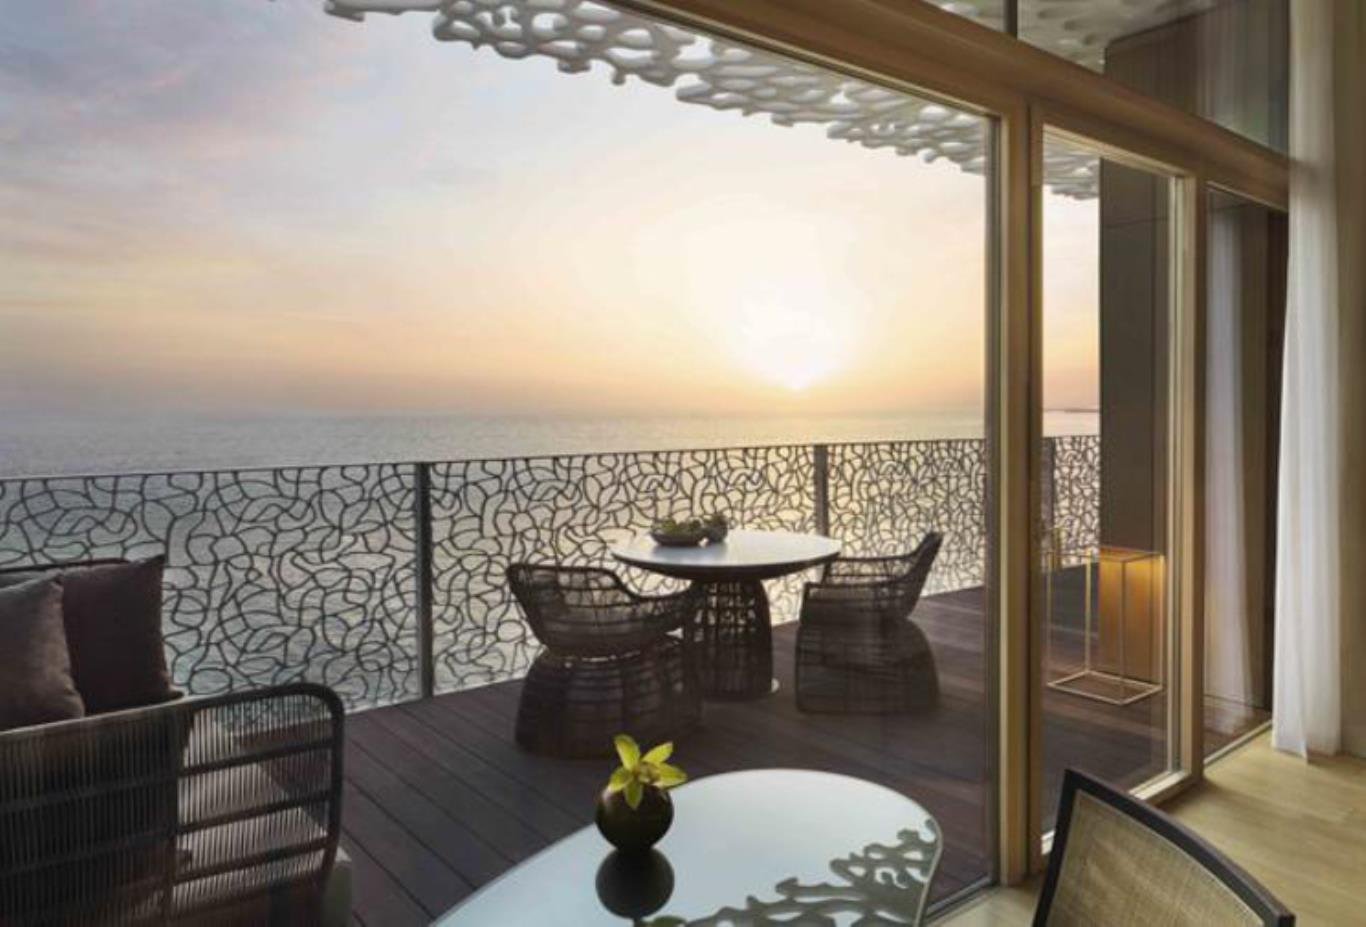 Premium Ocean View Room balcony